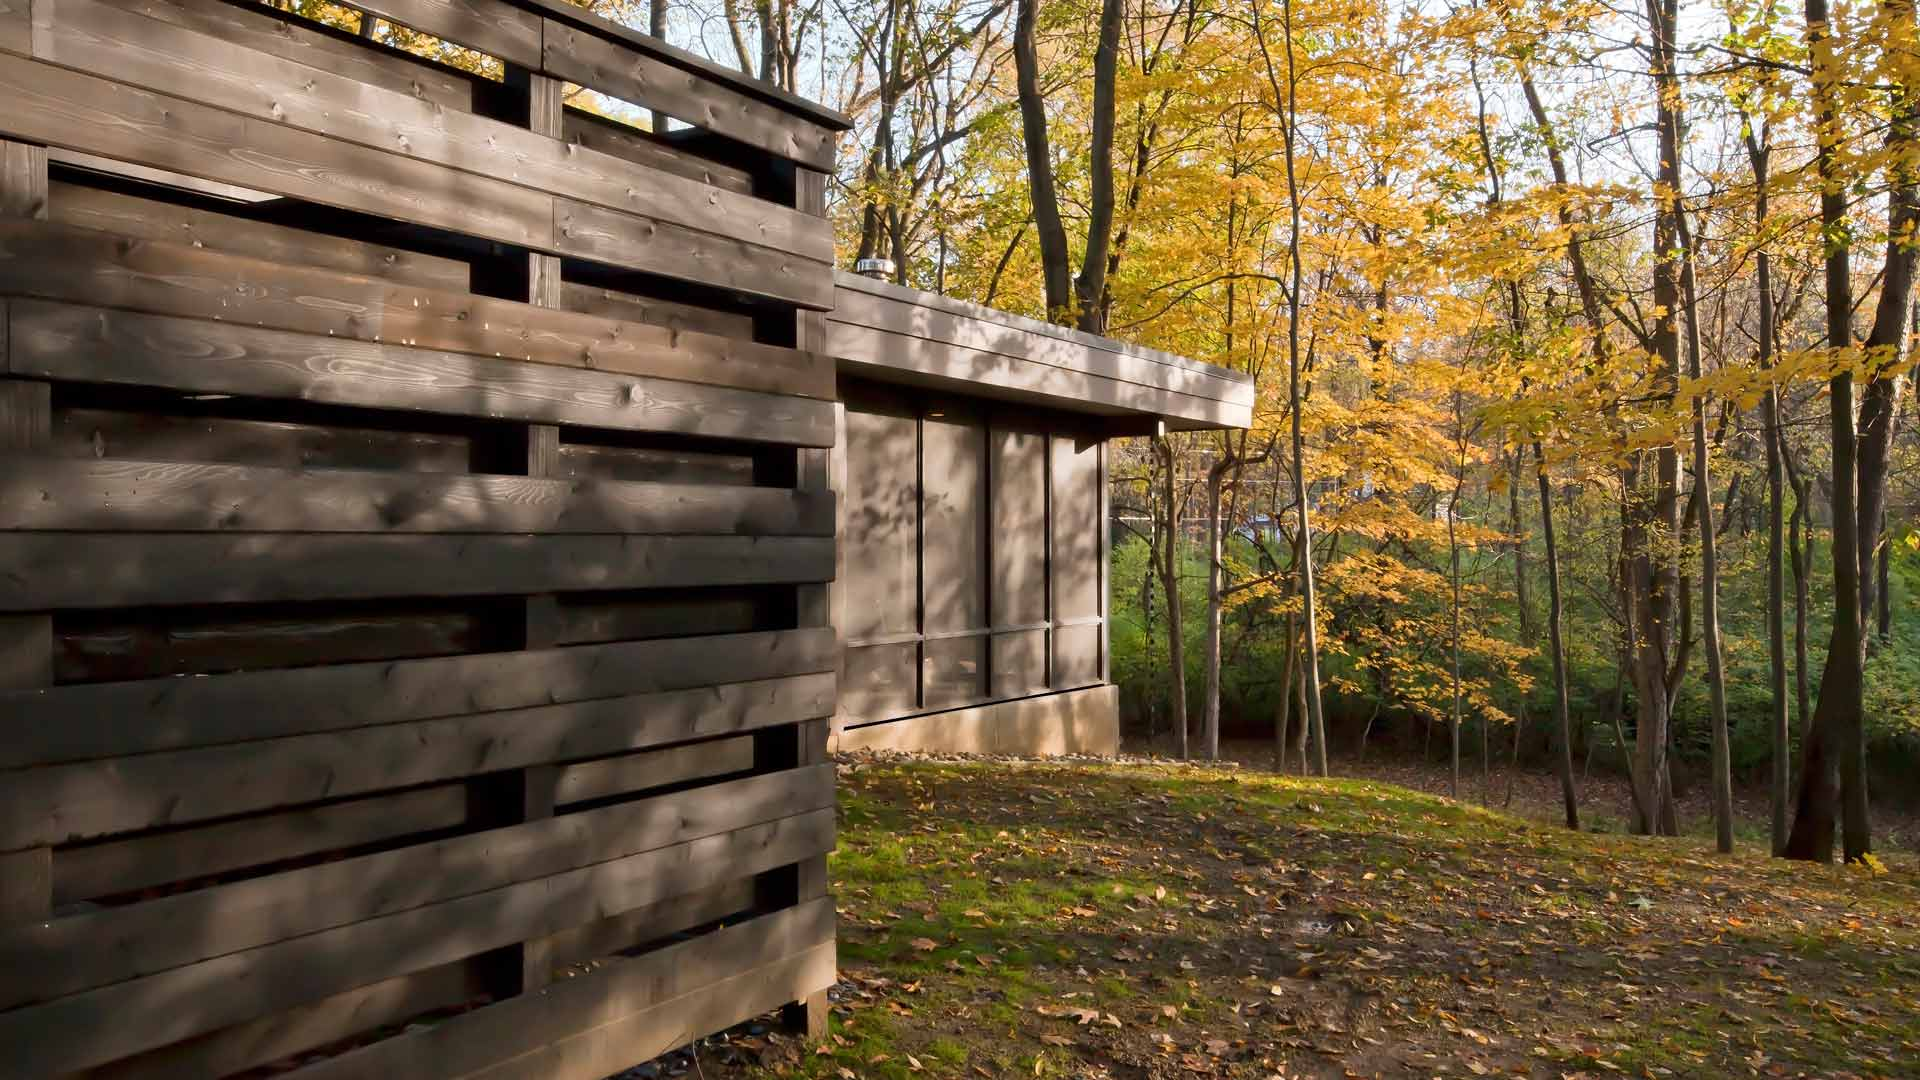 Flat Roofs, large roof cantilever, rainchains, privacy wall, wooded site, sloping site, screened porch, sloping site - Midcentury Modern Renovation - 81st Street - Indianapolis, Christopher Short, Architect, HAUS Architecture